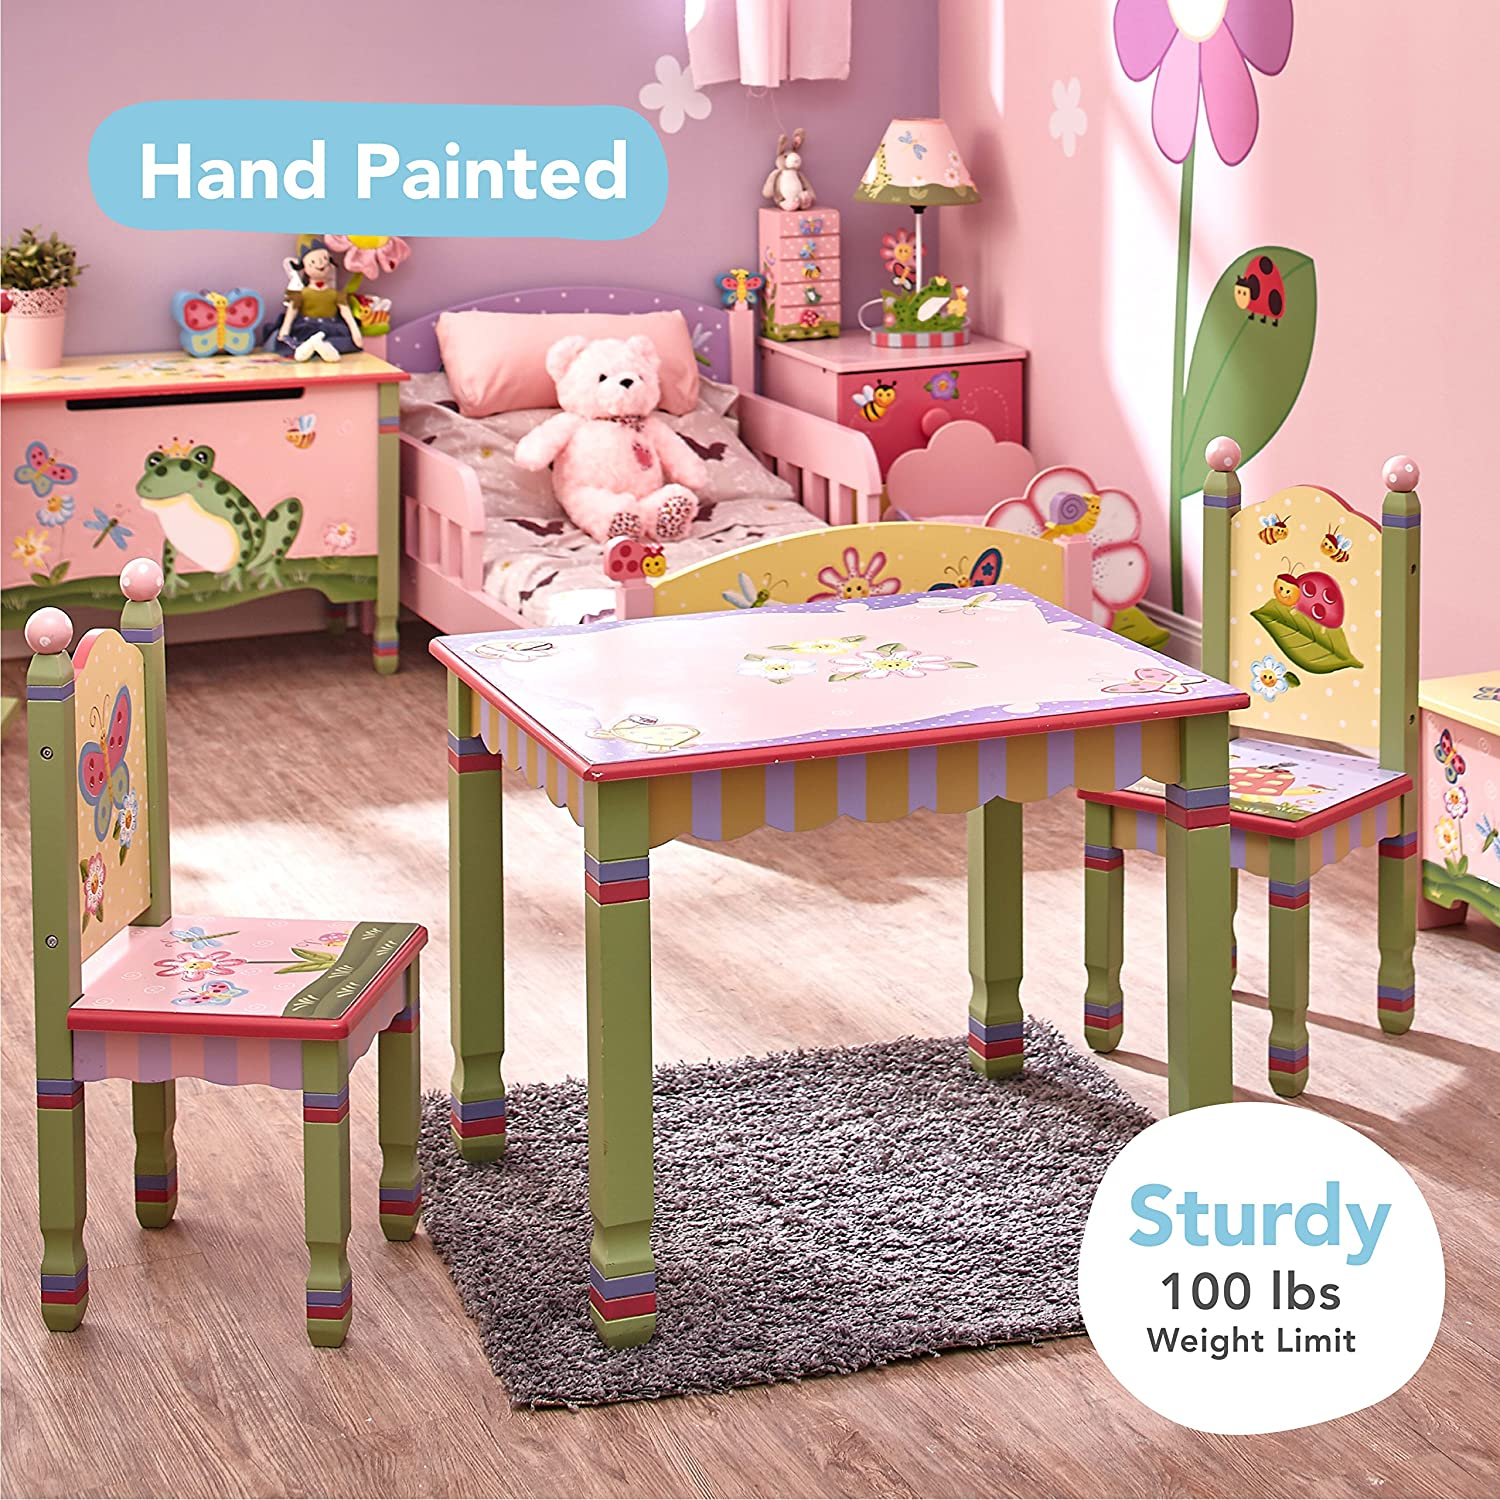 ... Kids Wooden Table And 2 Chairs Set Imagination Inspiring Hand Crafted U0026  Hand Painted Details Non Toxic, Lead Free Water Based Paint: Toys U0026 Games